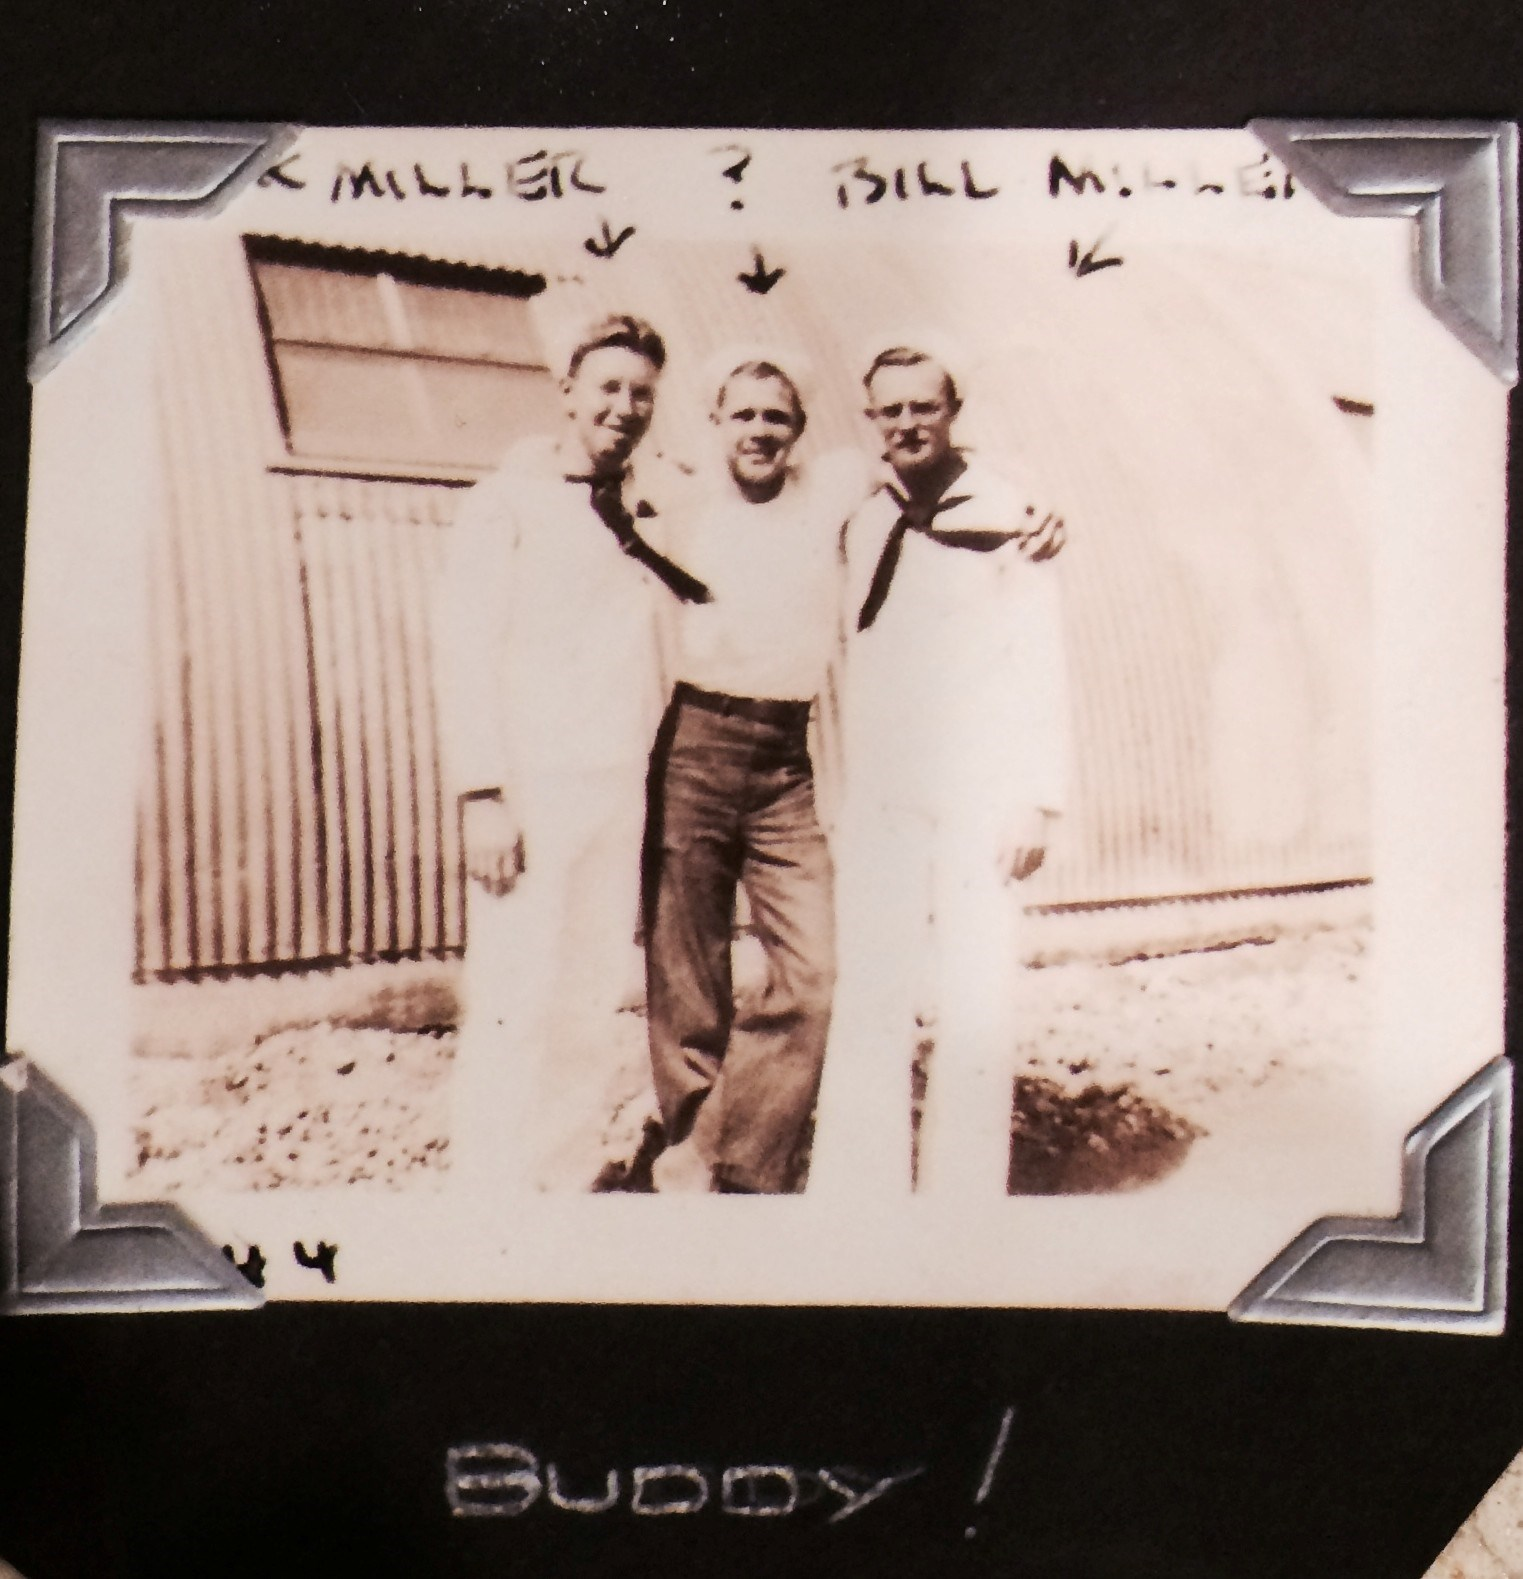 Grandpa Bill in the Navy with 2 buddies